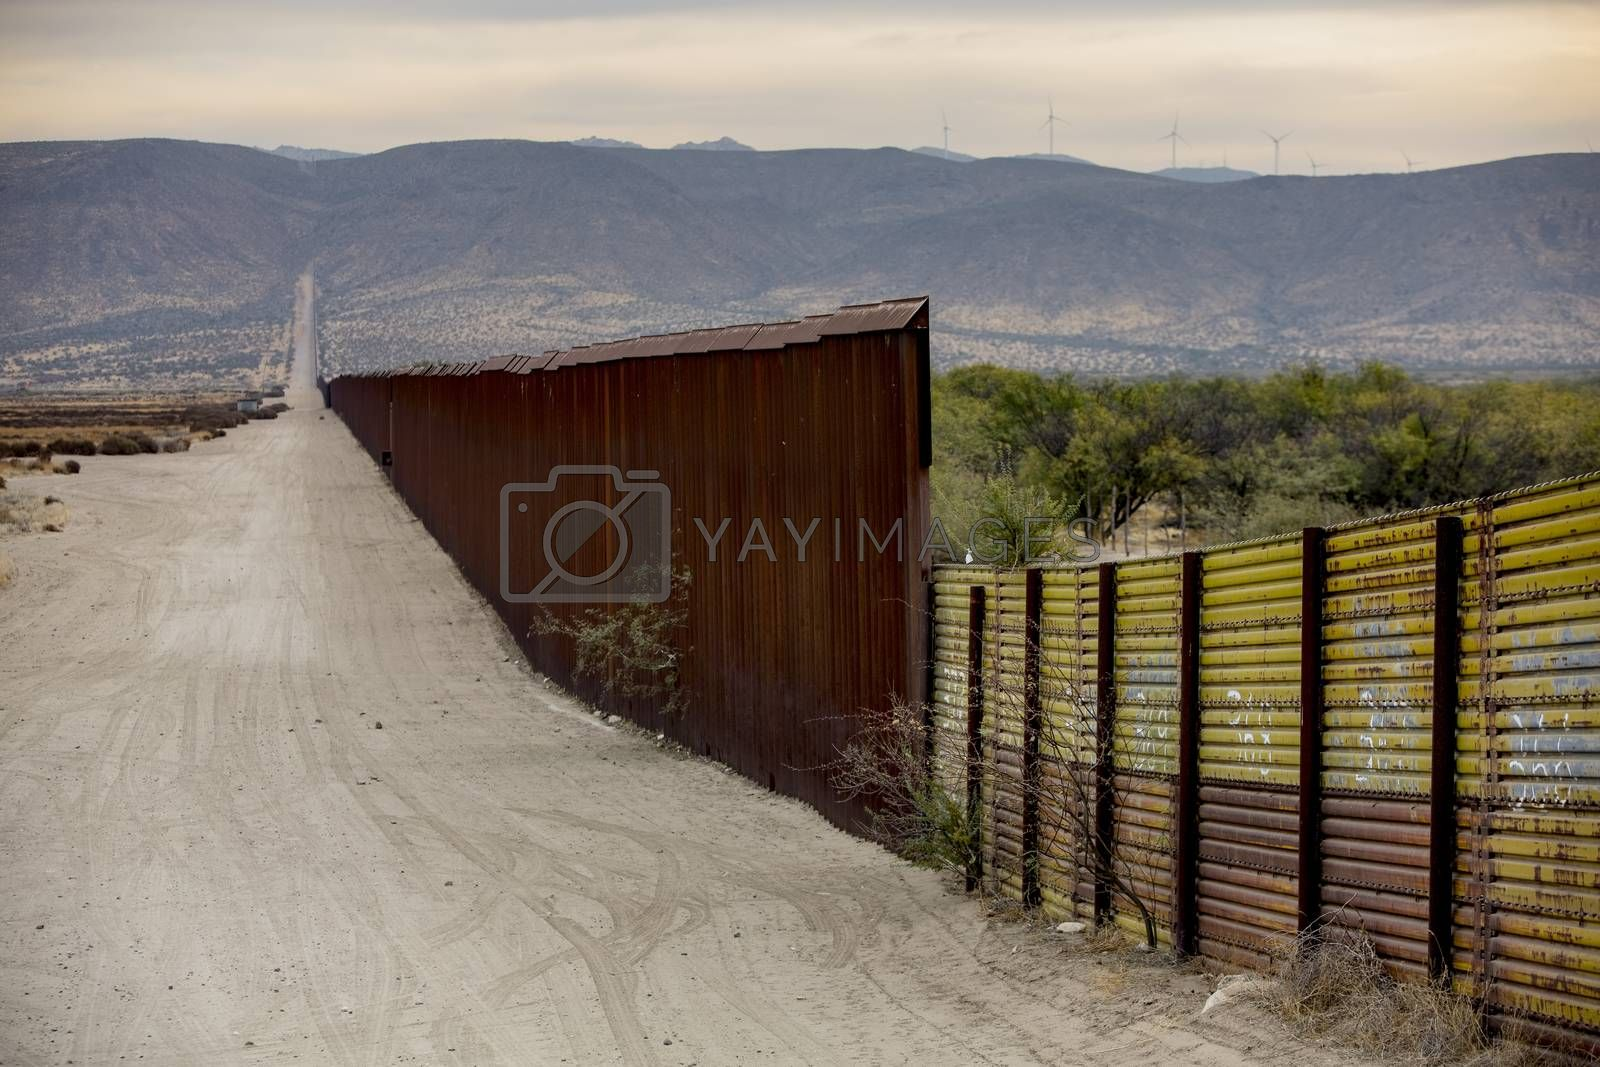 A lengthy section of the United States border wall with Mexico in California